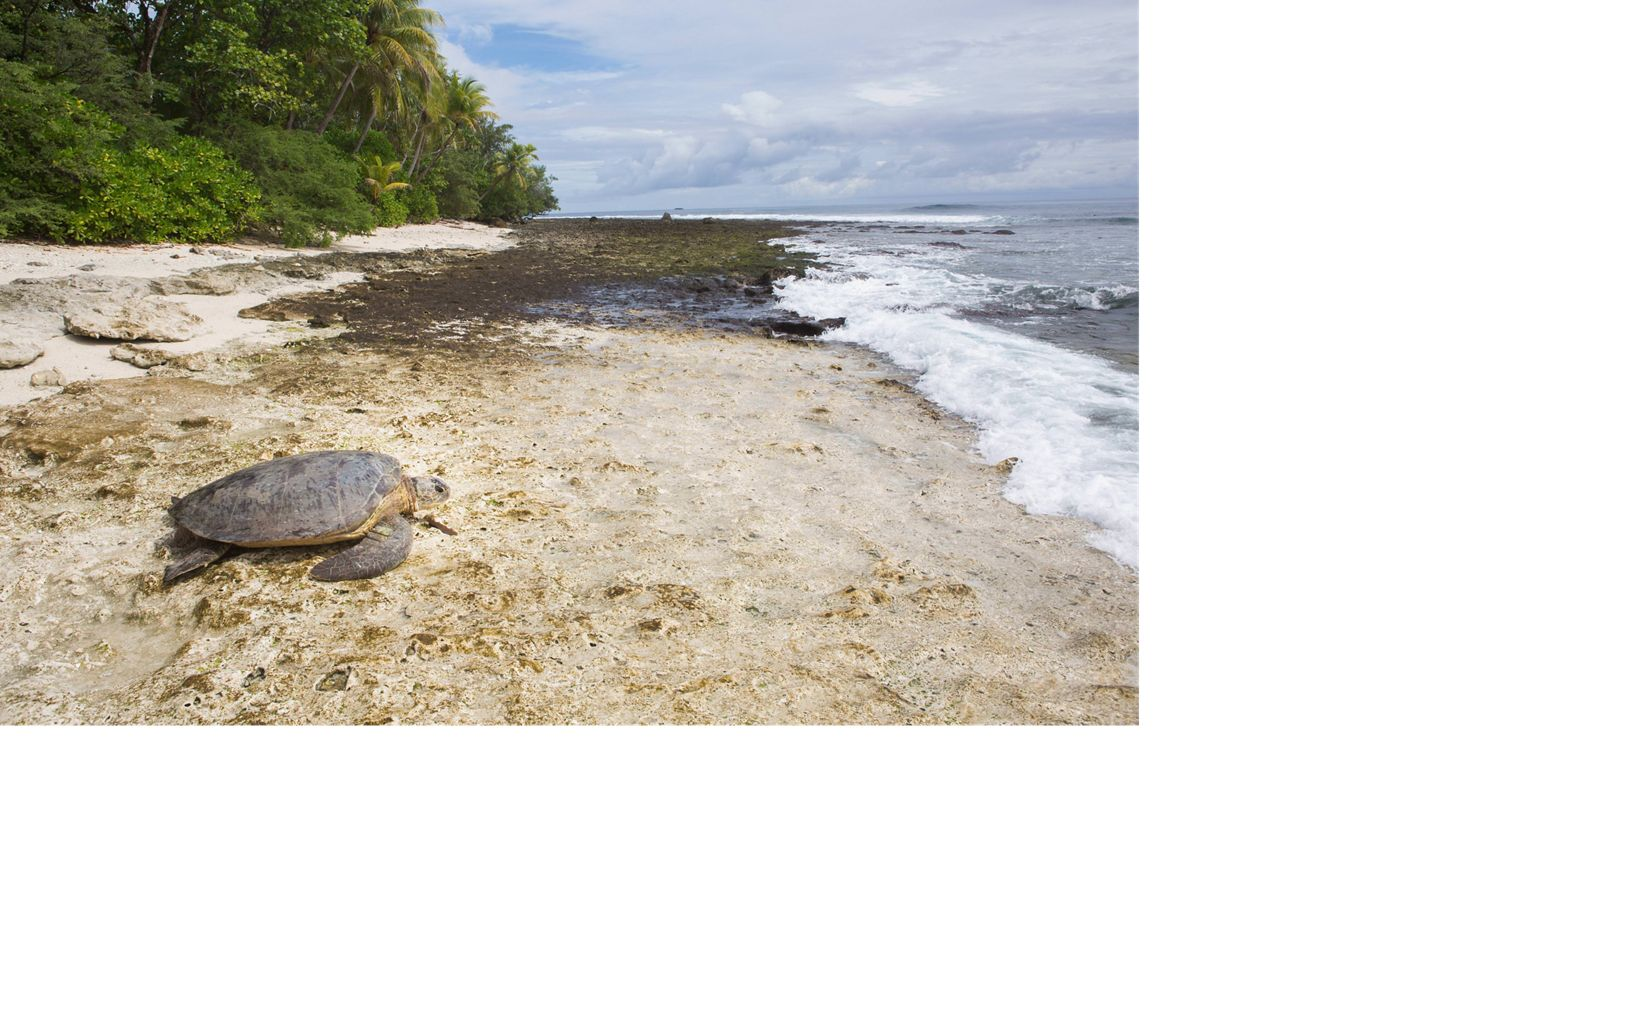 a large turtle on a sandy, seaweed-covered beach